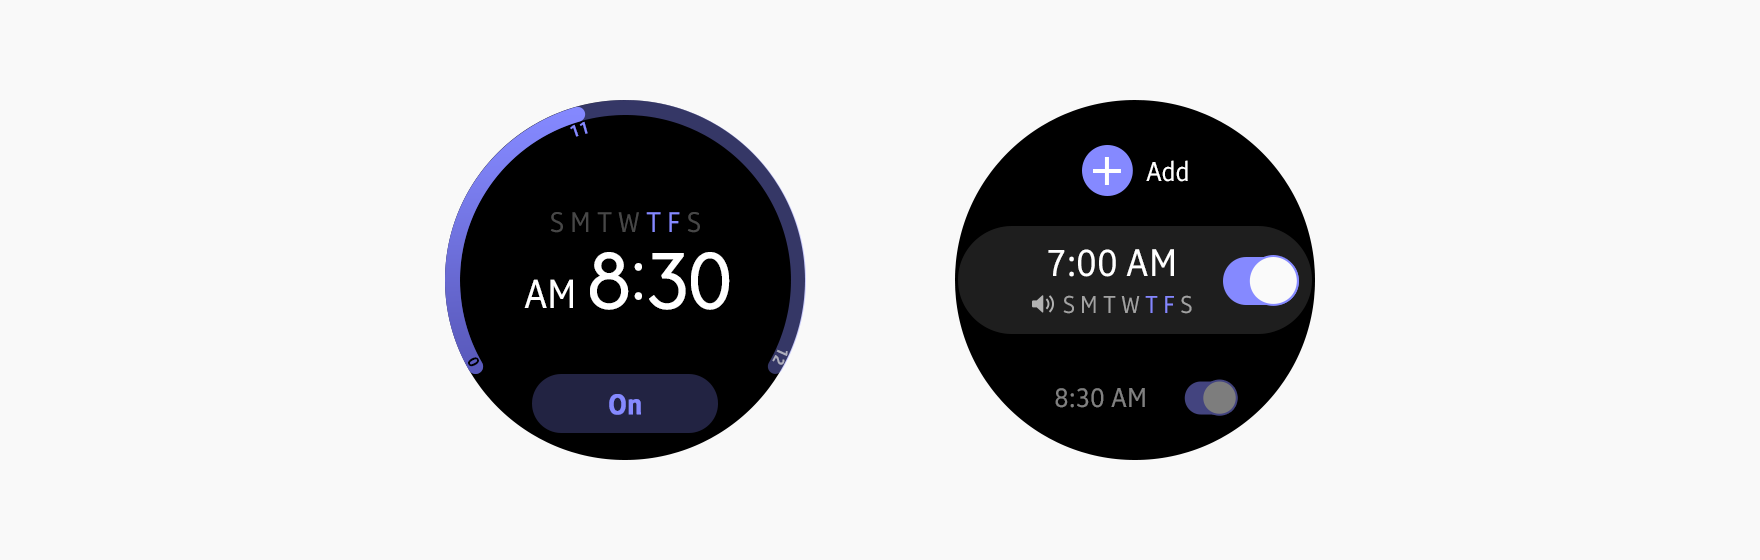 Widgets for the Alarm app use purple as an identity color.